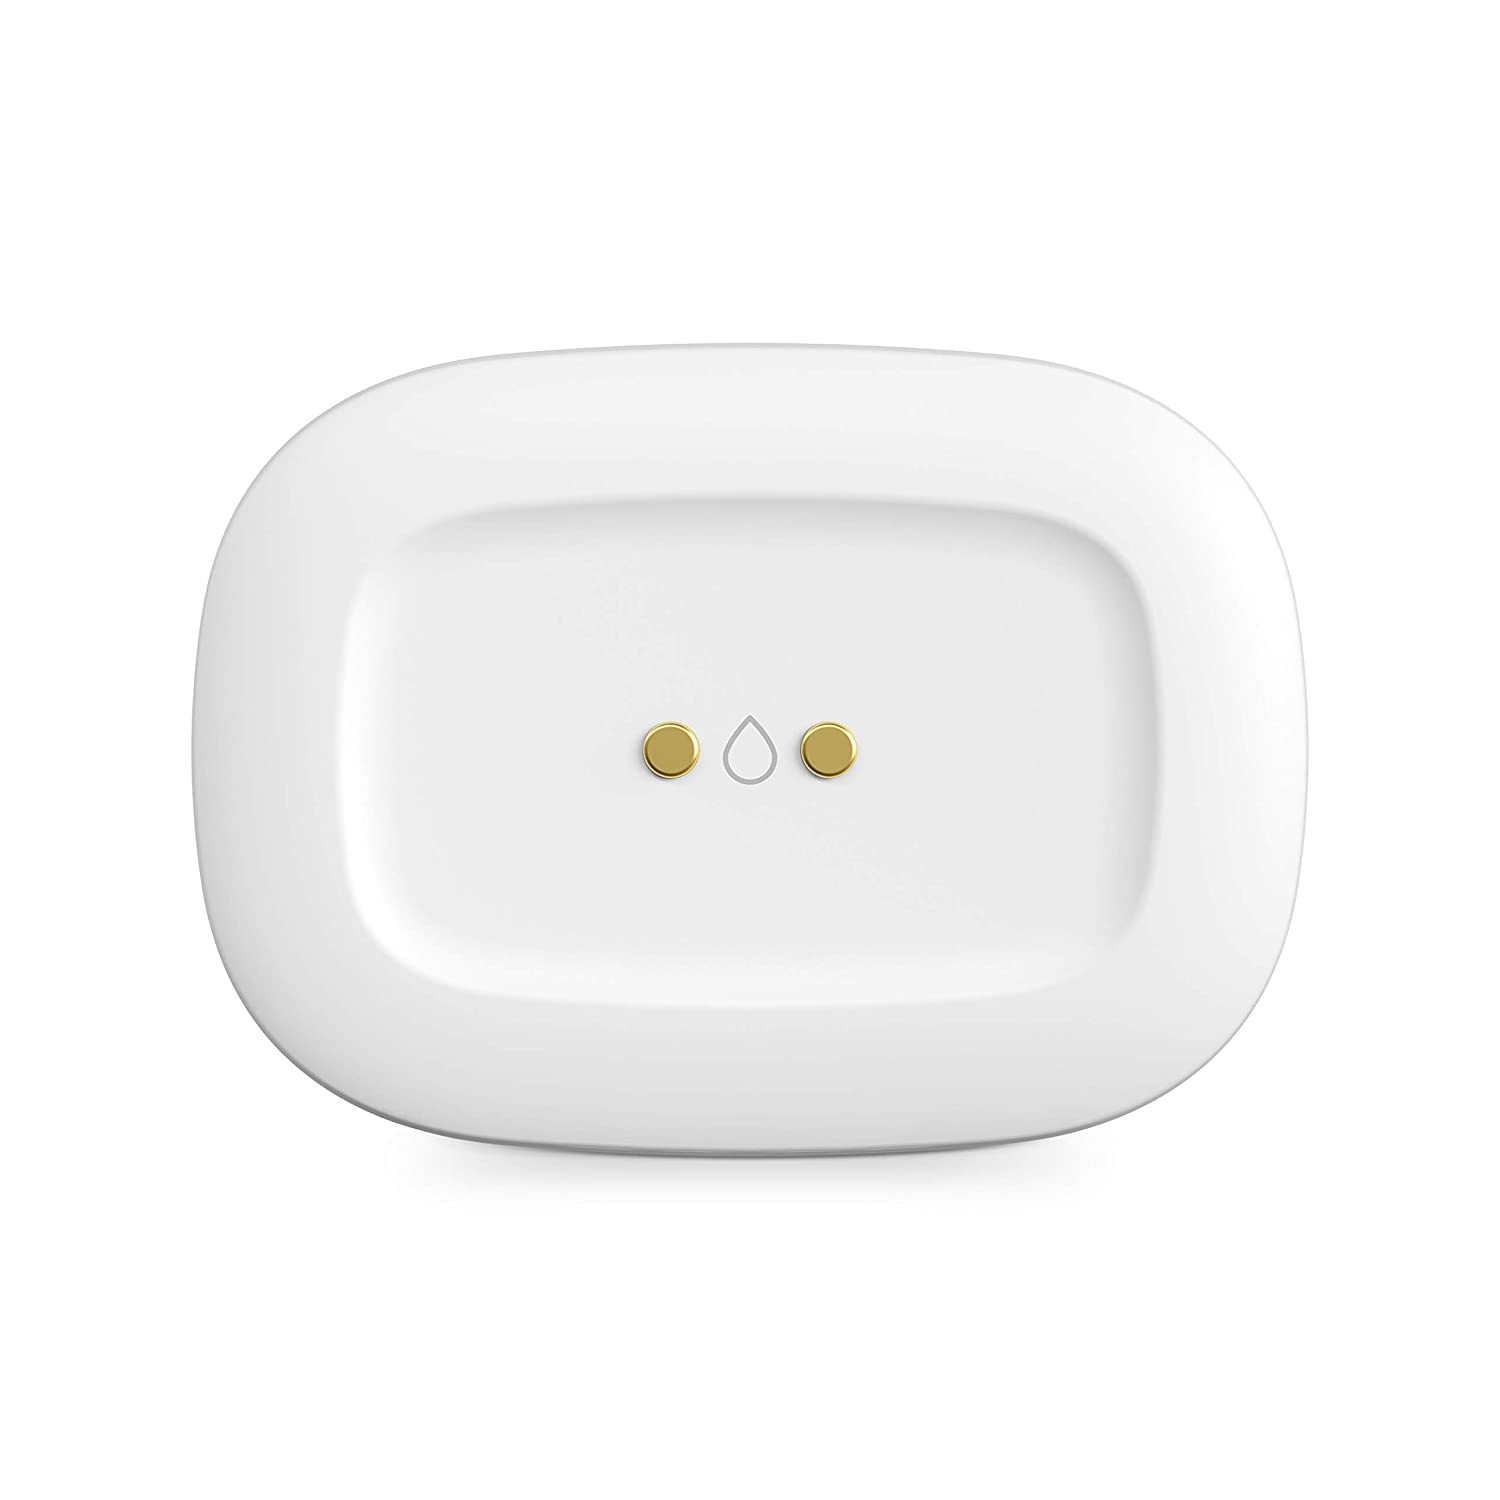 Samsung GP-U999SJVLCAA Smart Things Water Leak Sensor - Automate Lights & Siren For Alert – ZigBee | Accessory to Smart Things Hub White